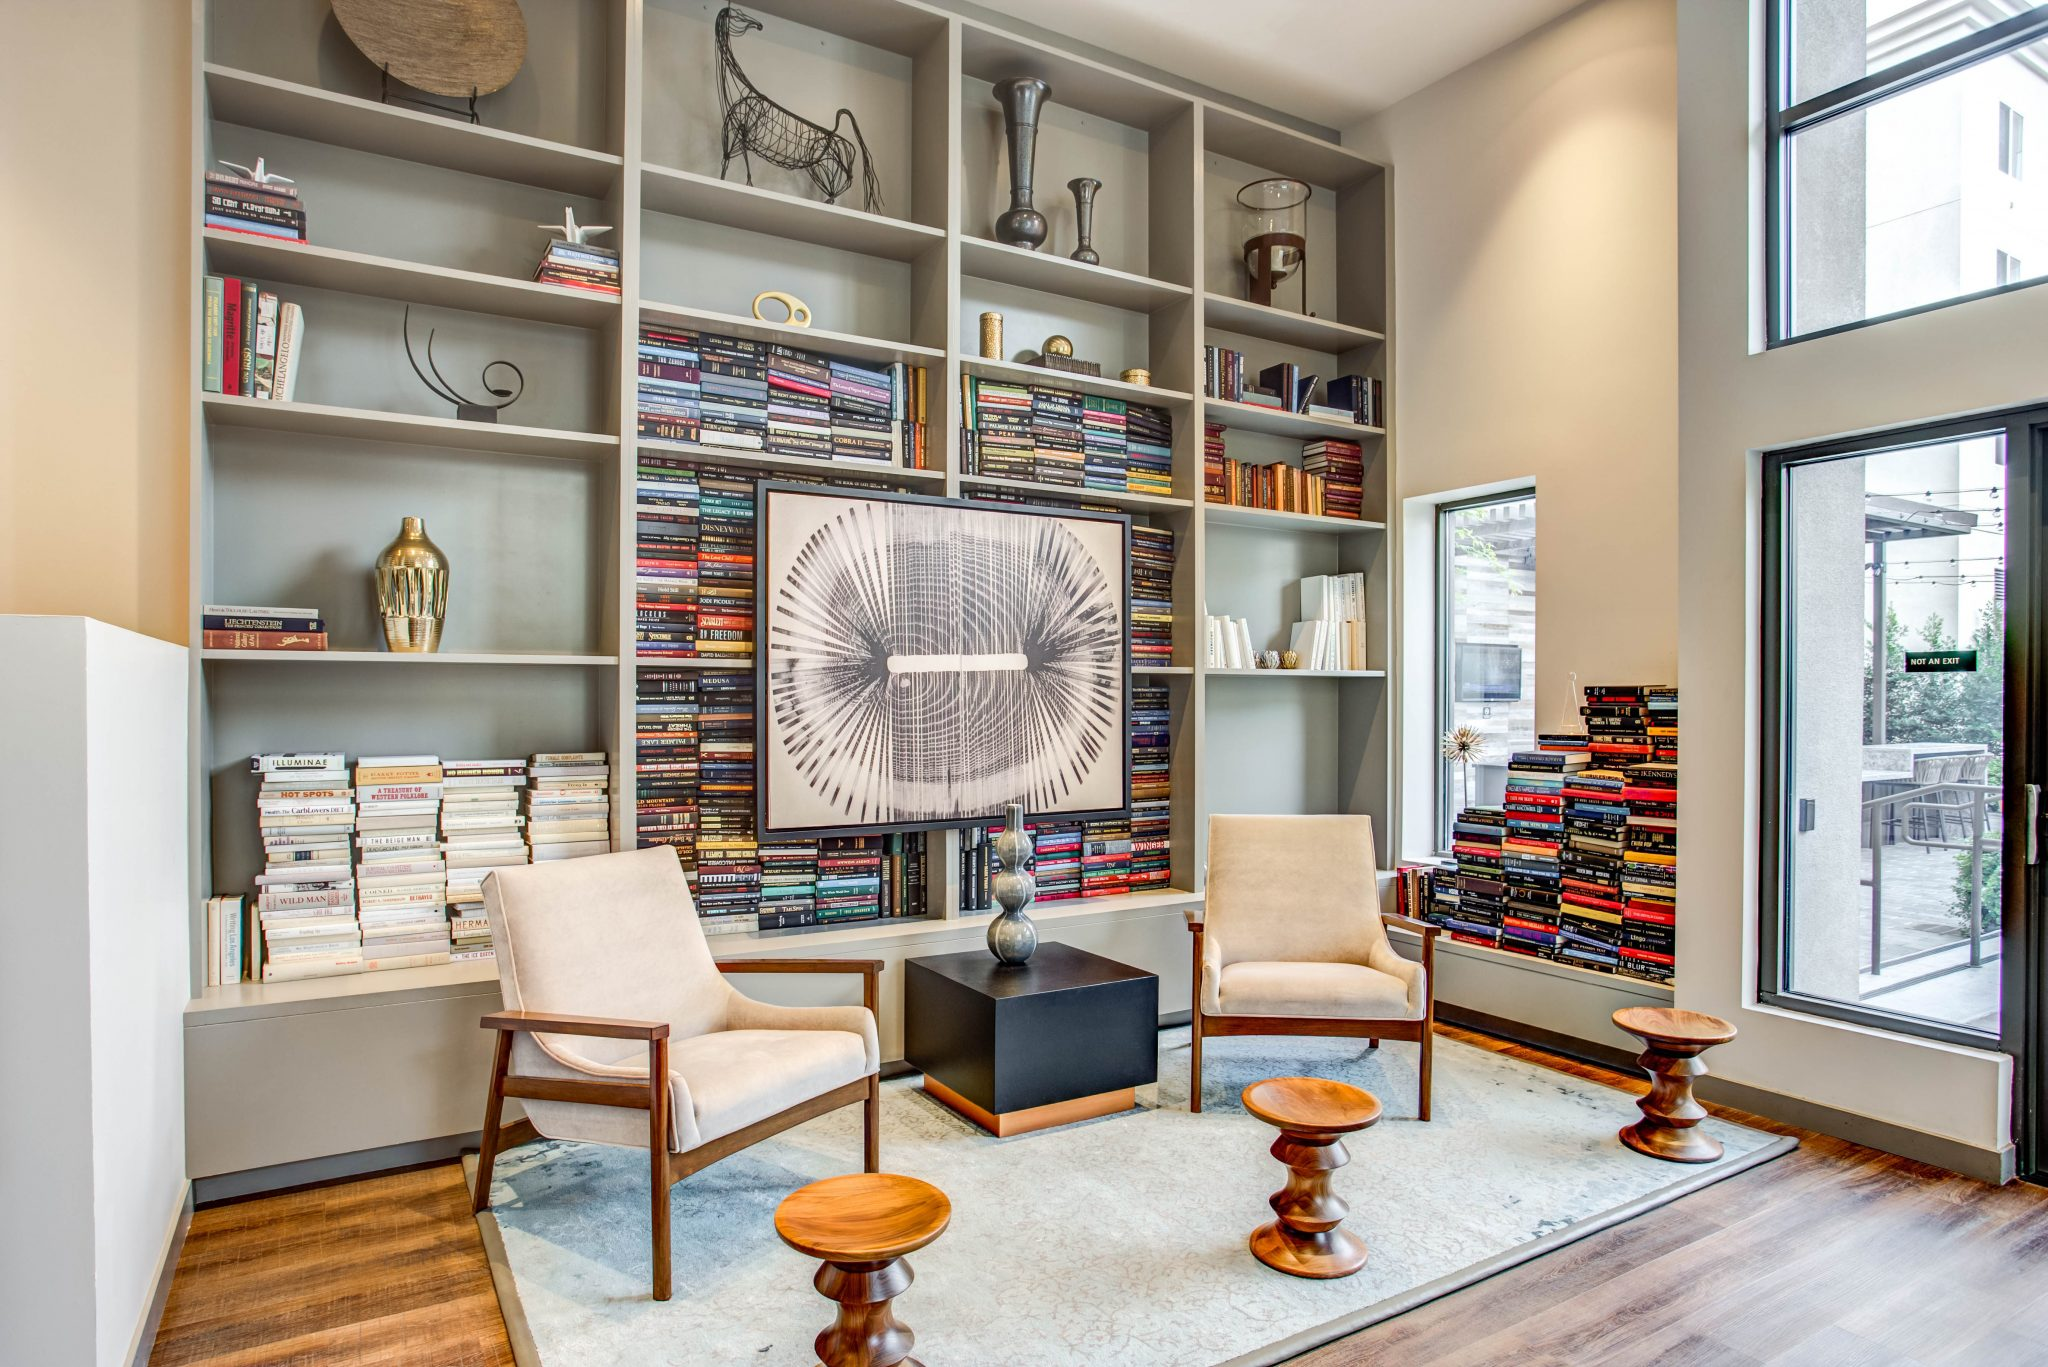 Common-area room with high ceilings, bookshelves and two modern chairs